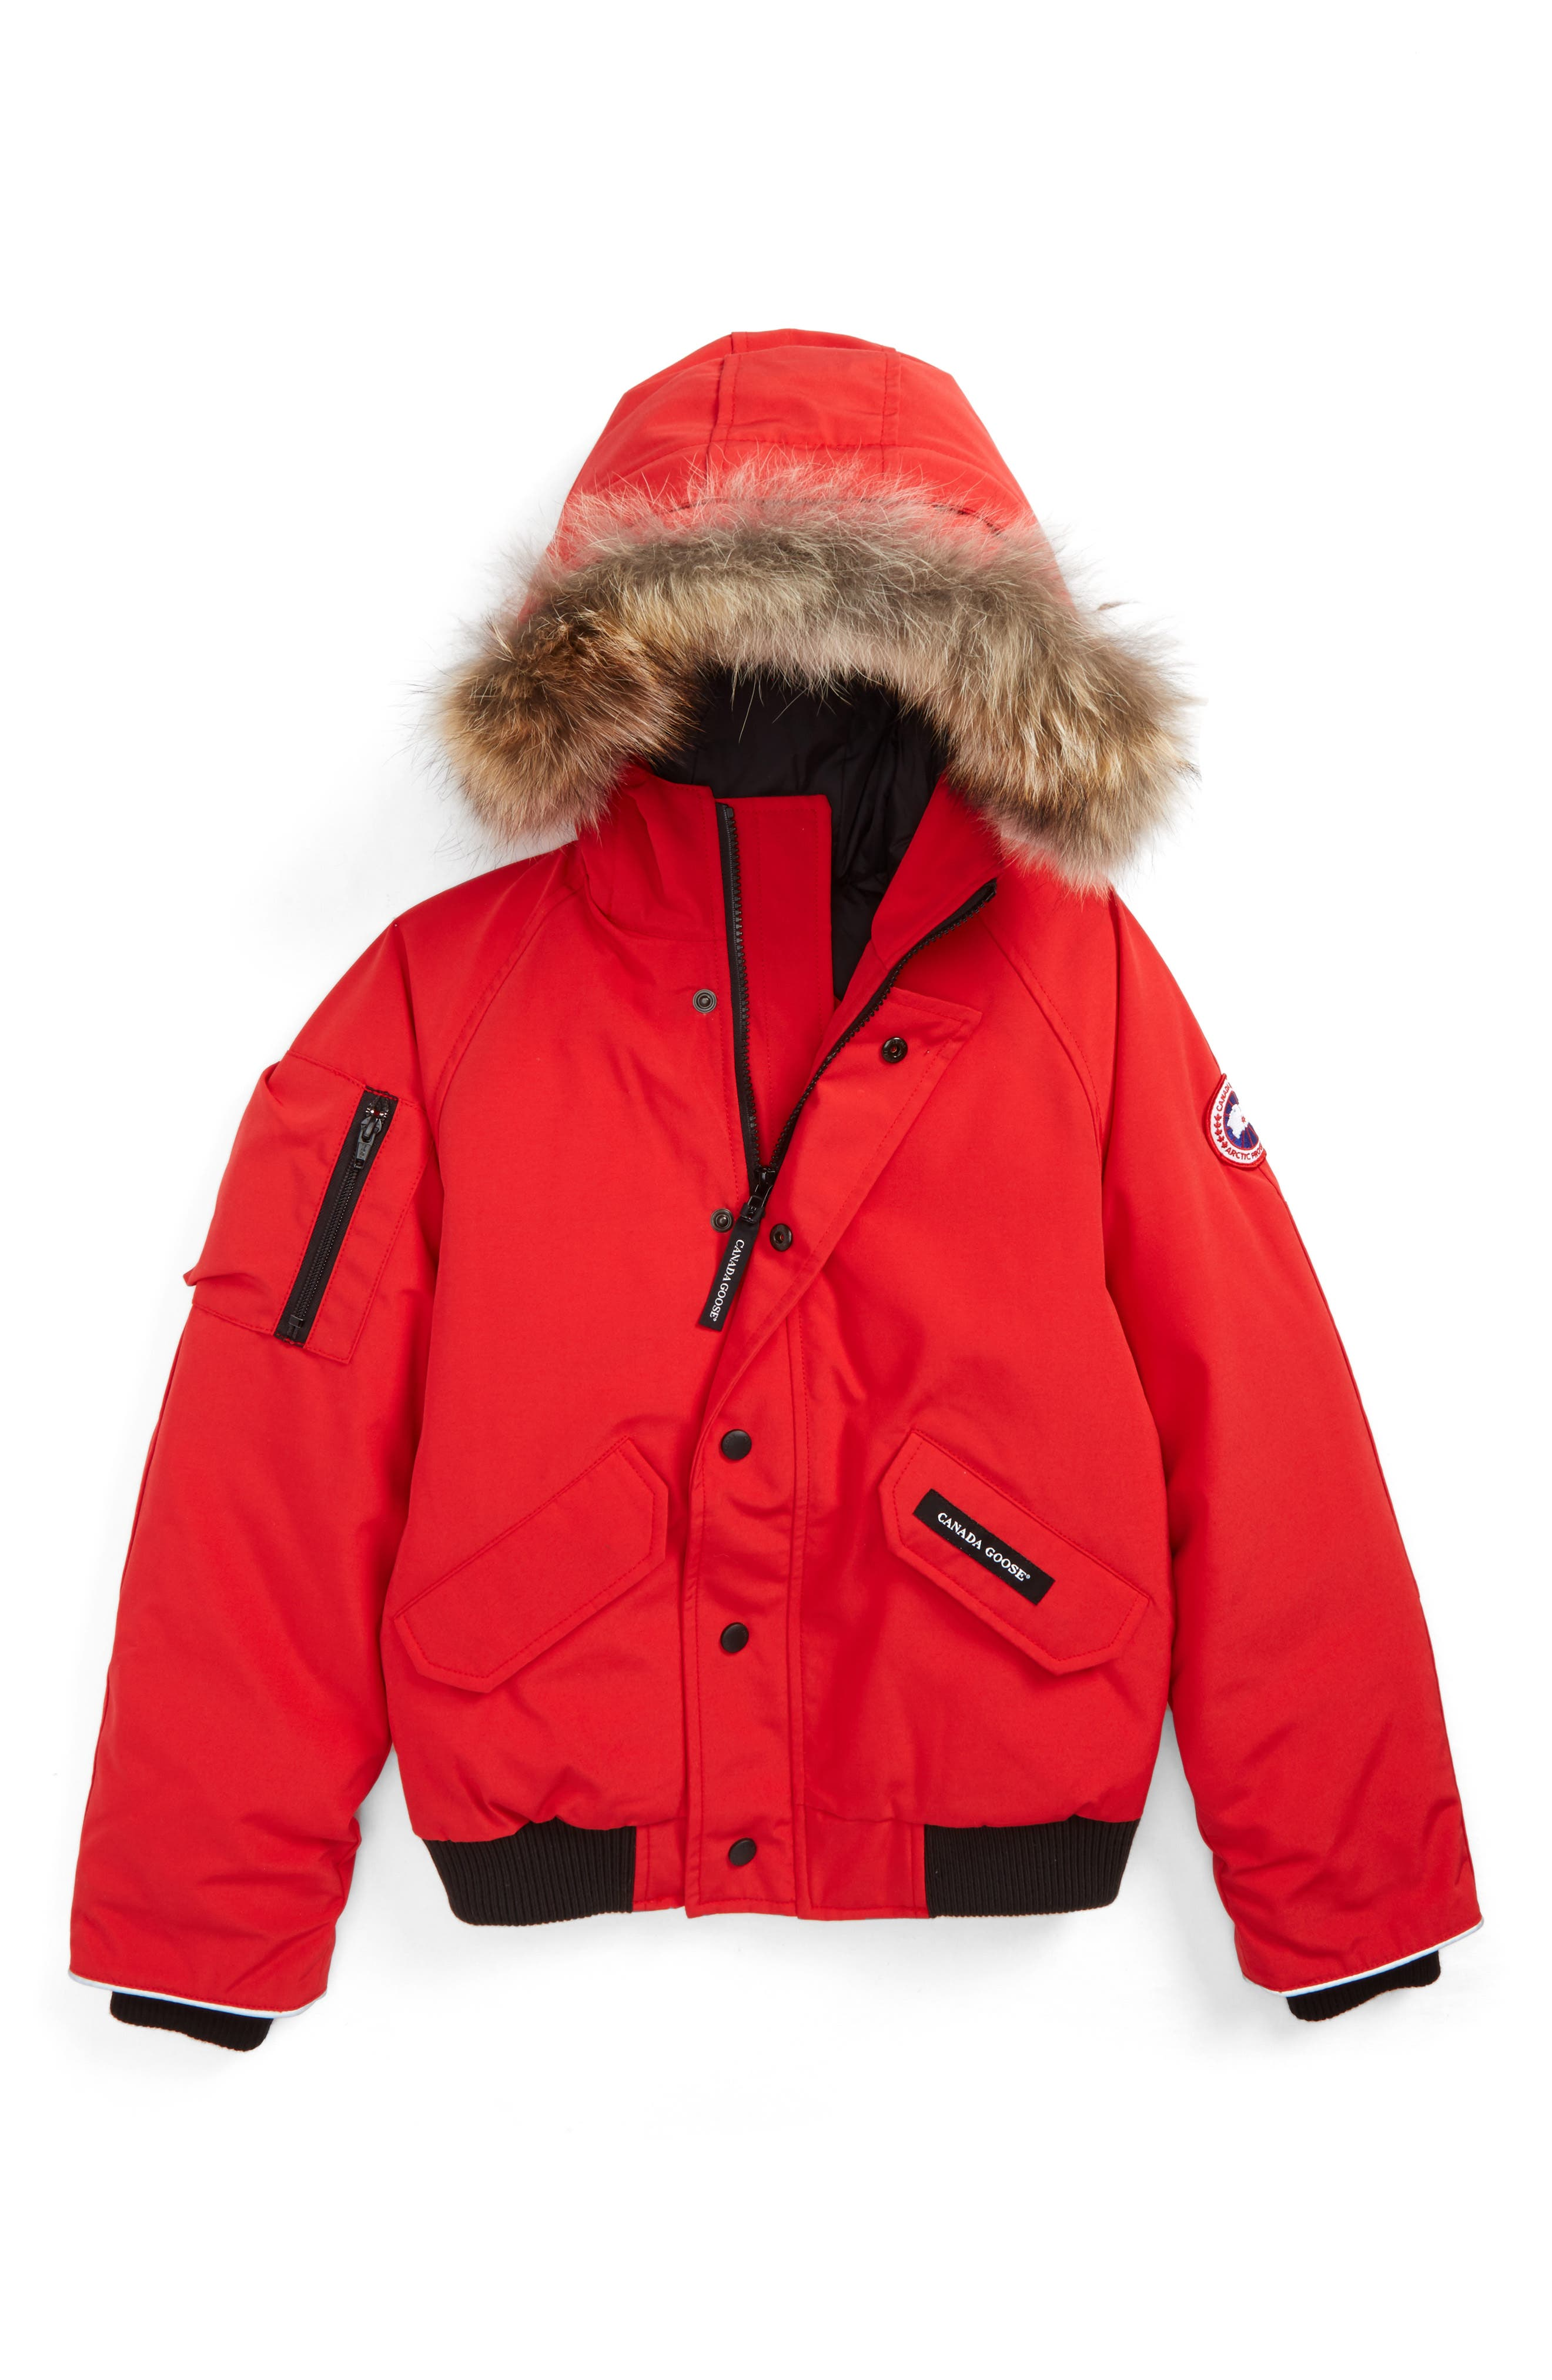 'Rundle' Down Bomber Jacket with Genuine Coyote Fur Trim,                             Main thumbnail 1, color,                             Red